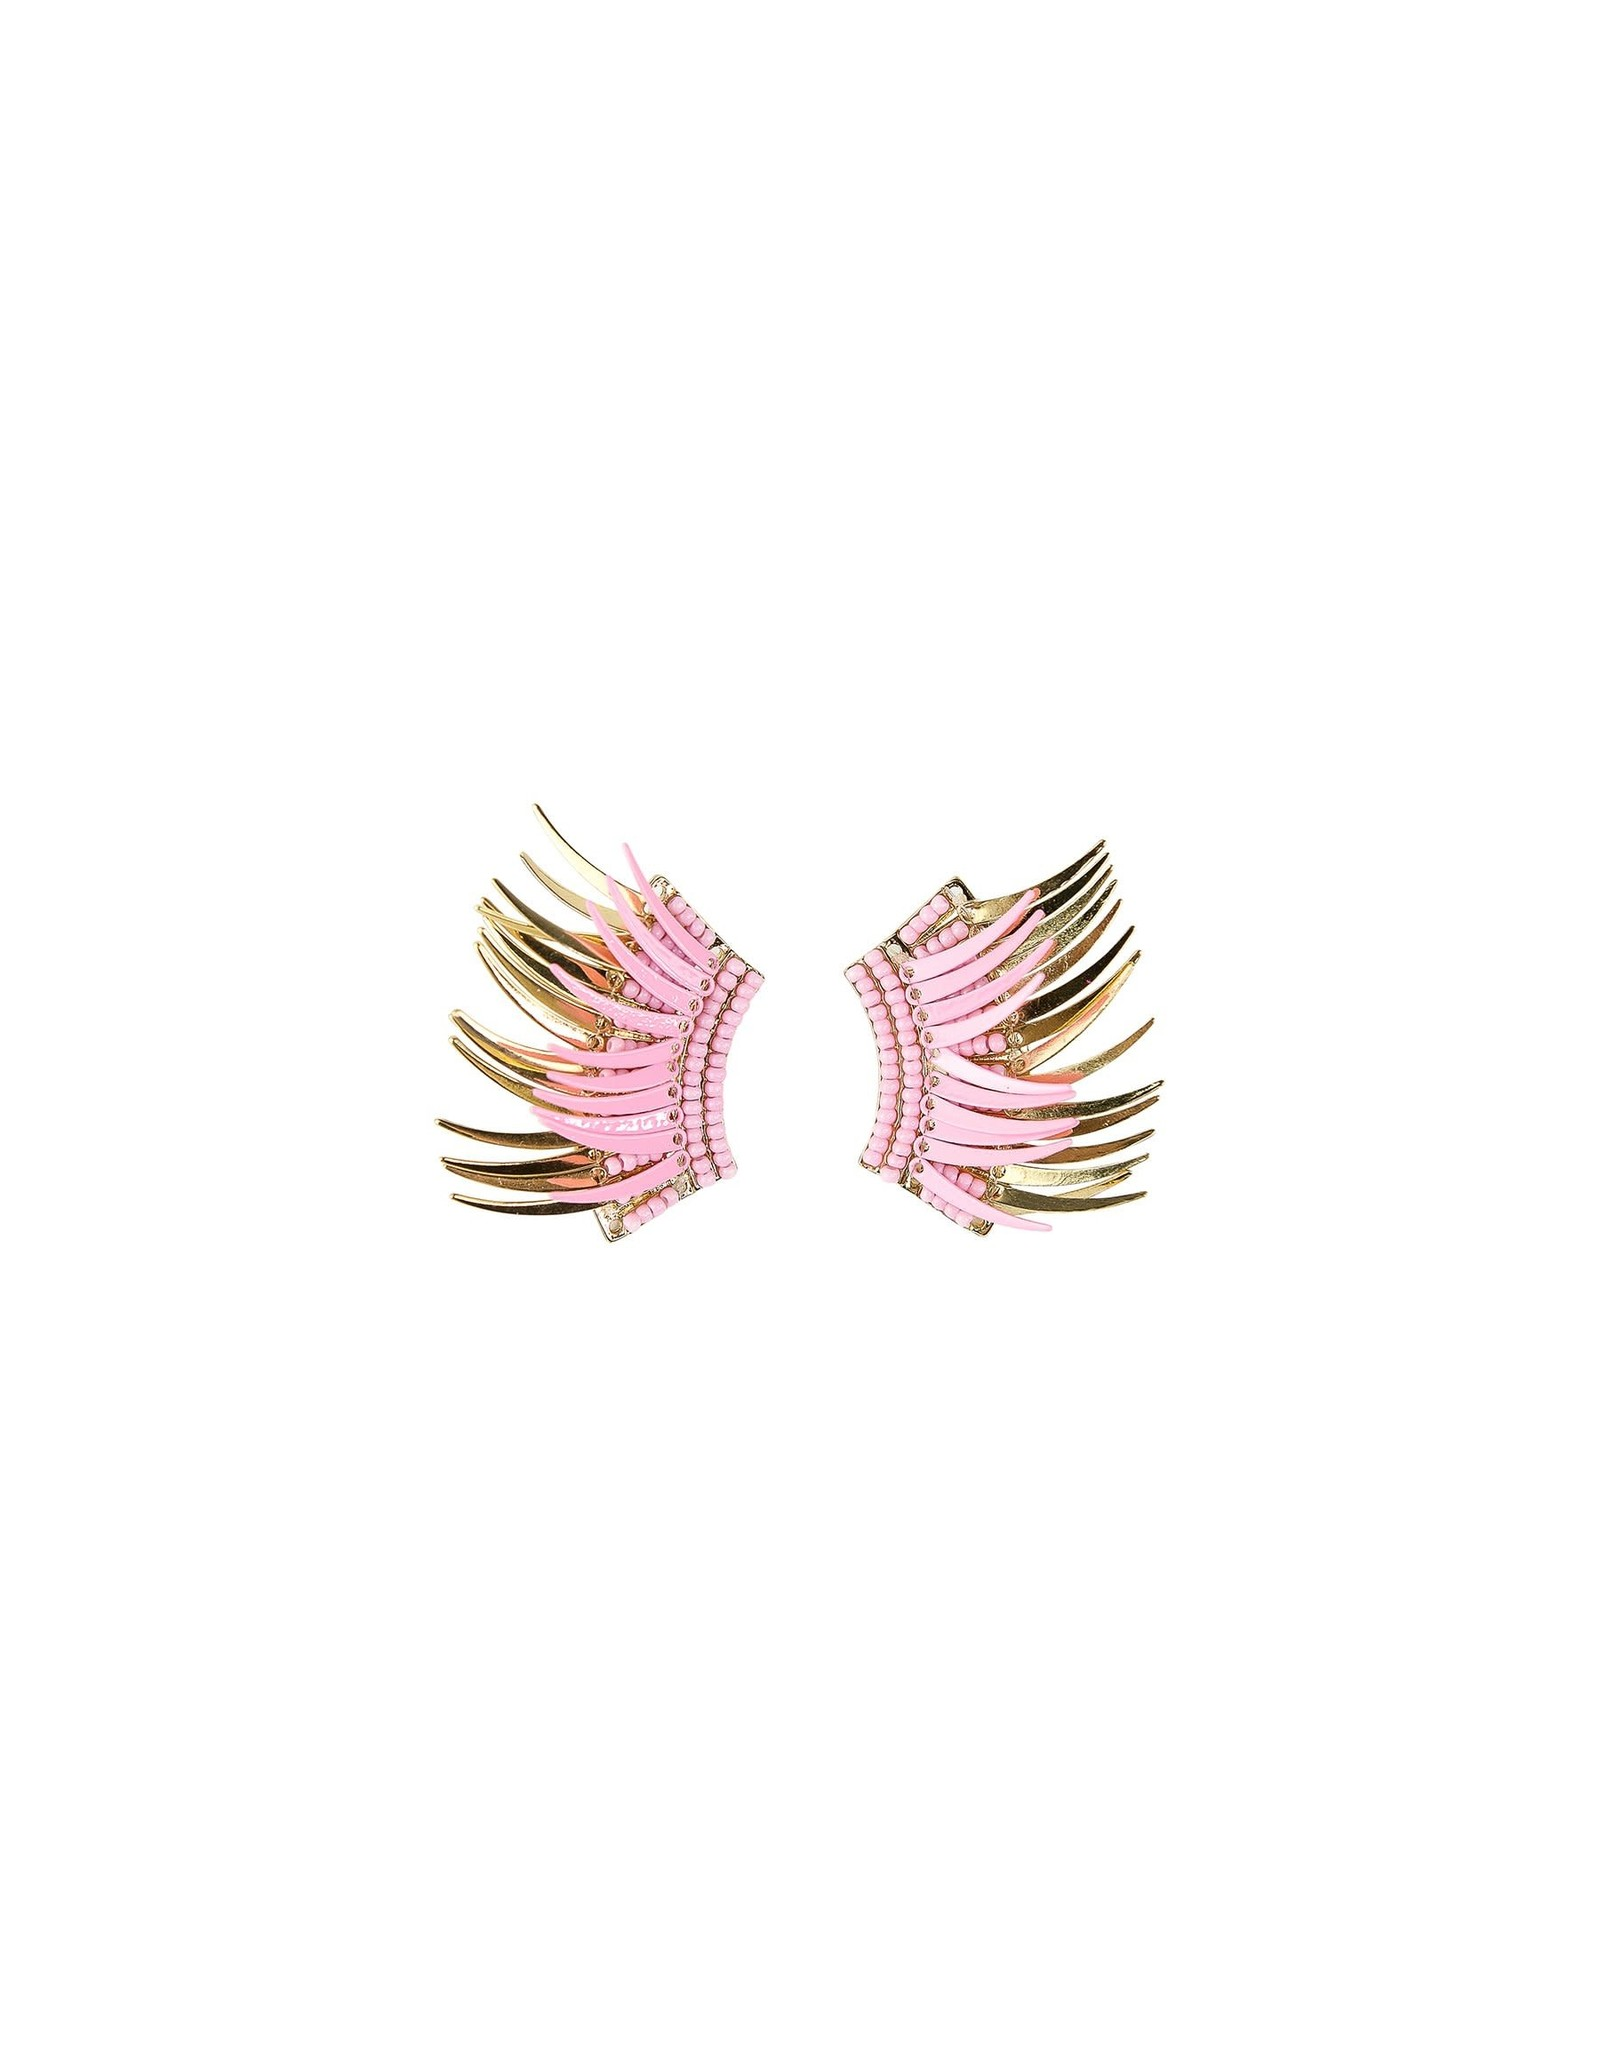 Under our Wings Pink & Gold Earrings